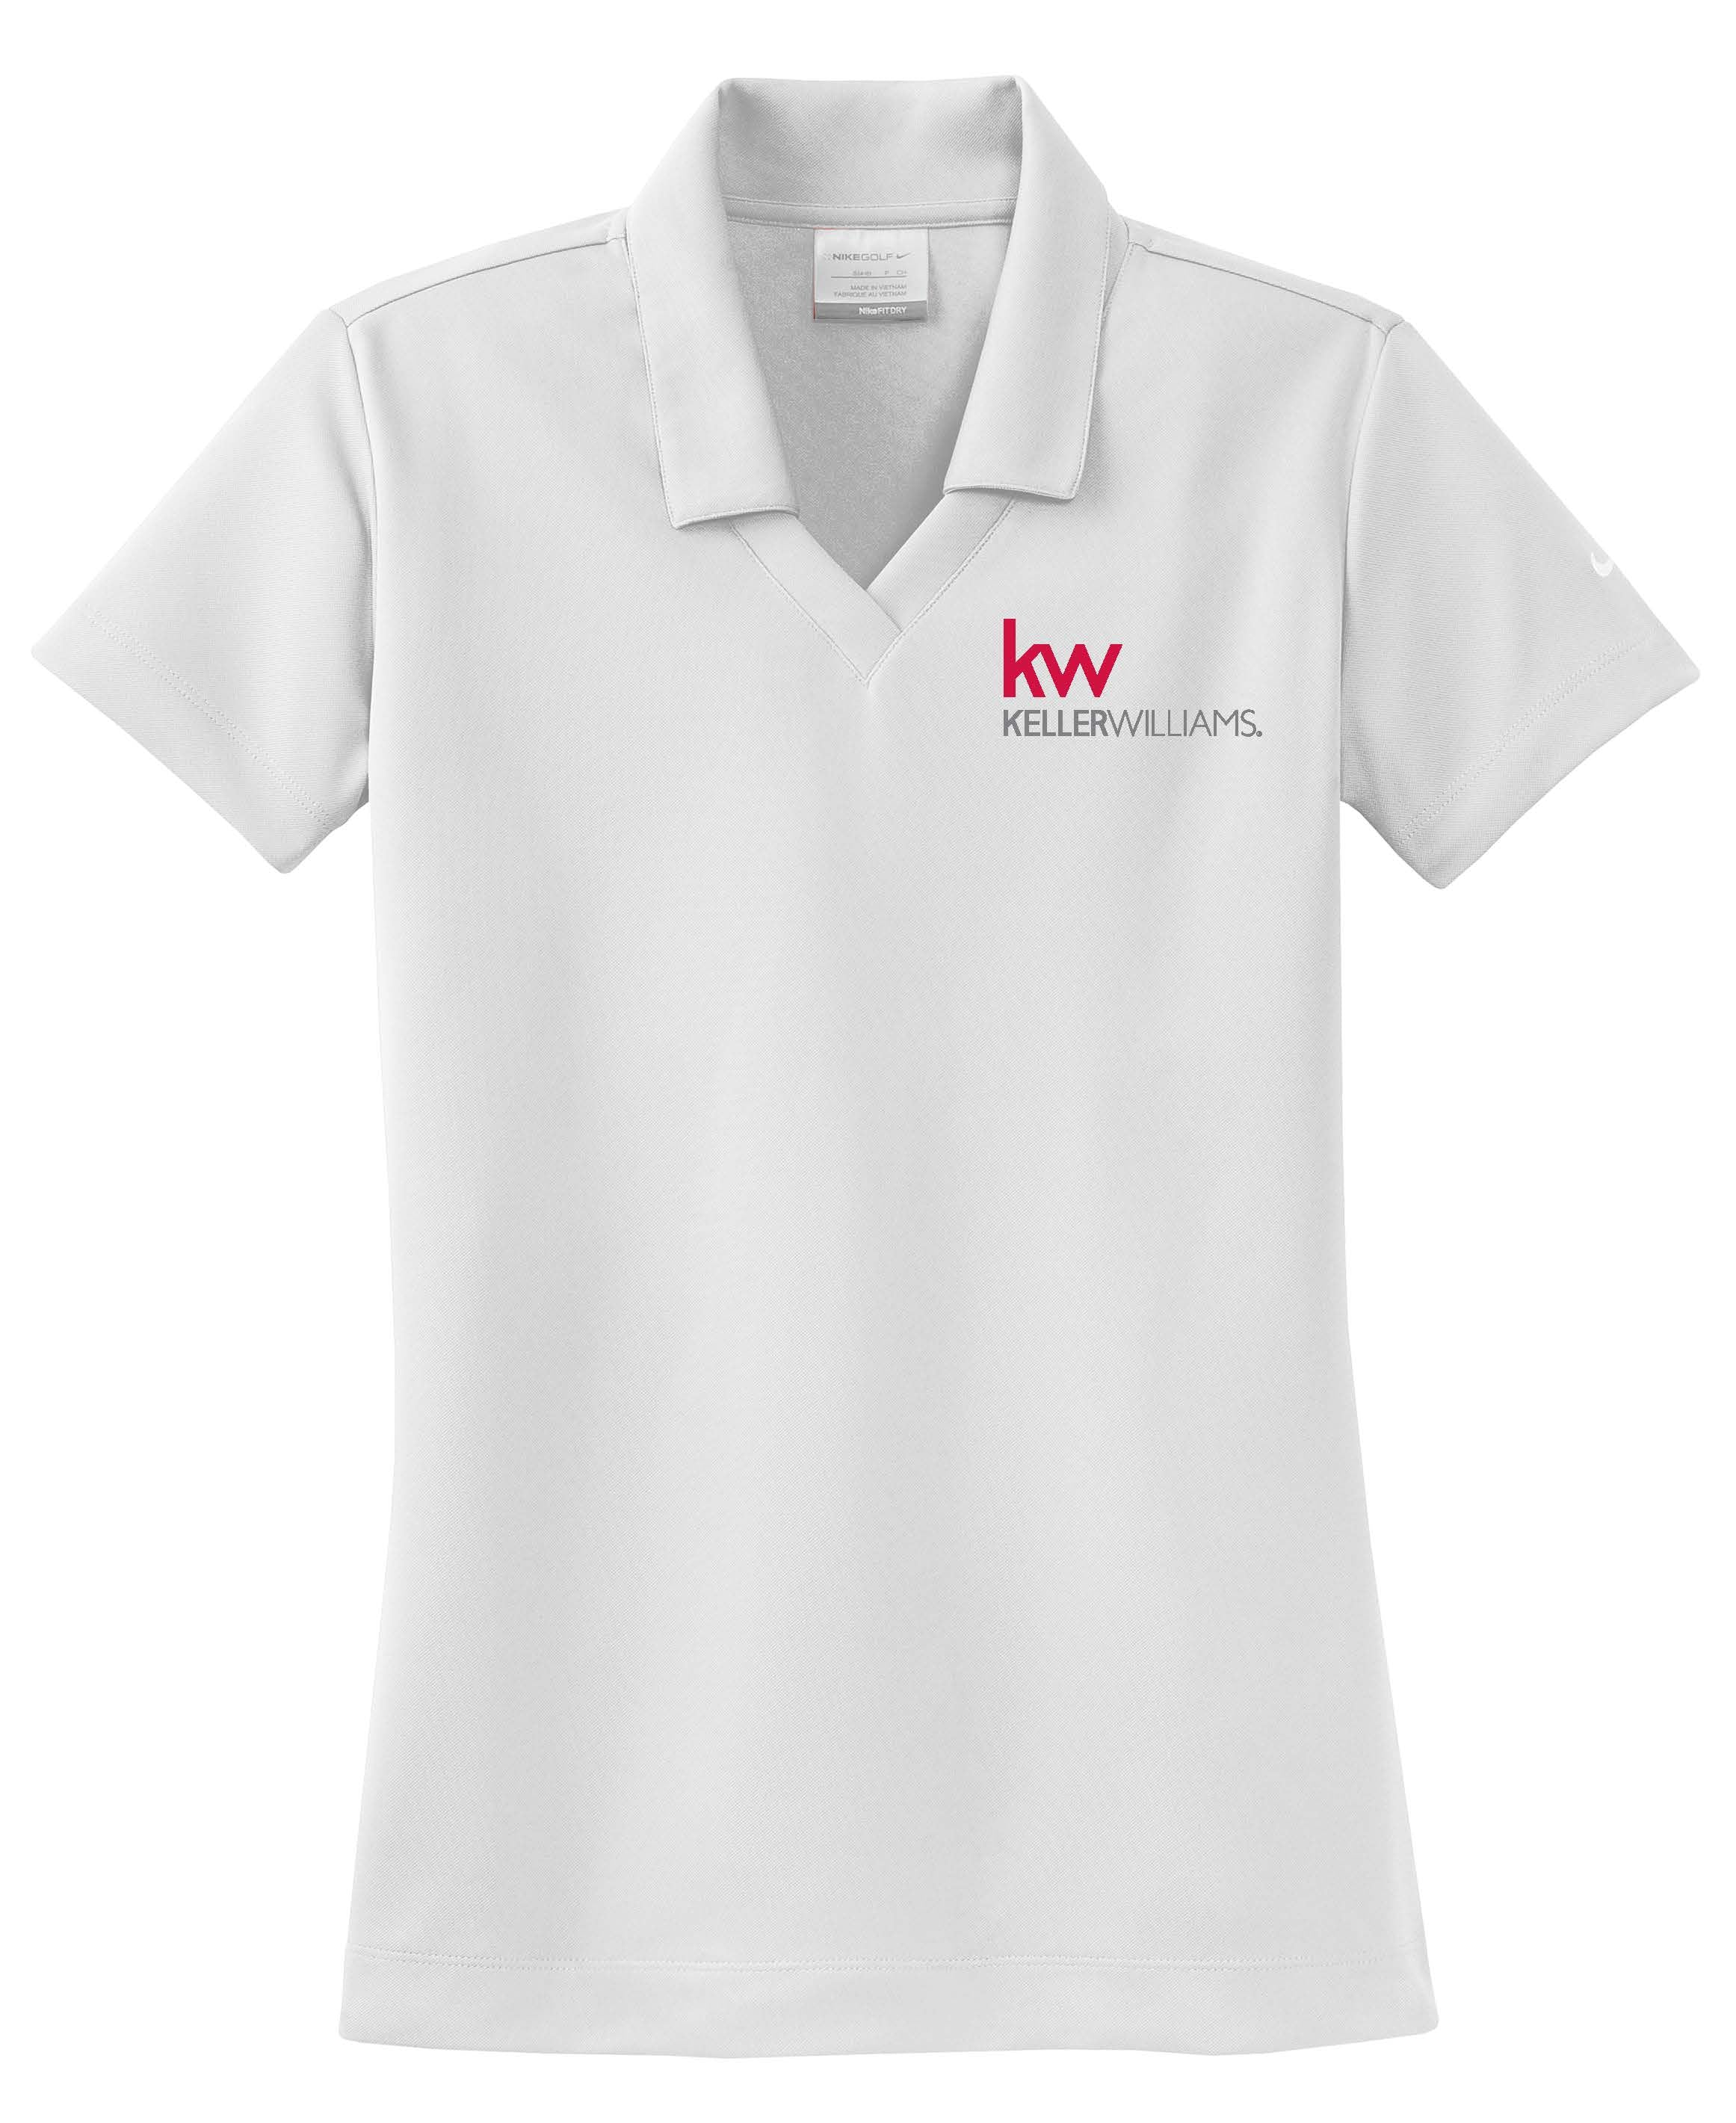 white nike polo with johnny collar and Keller Williams logo in embroidery